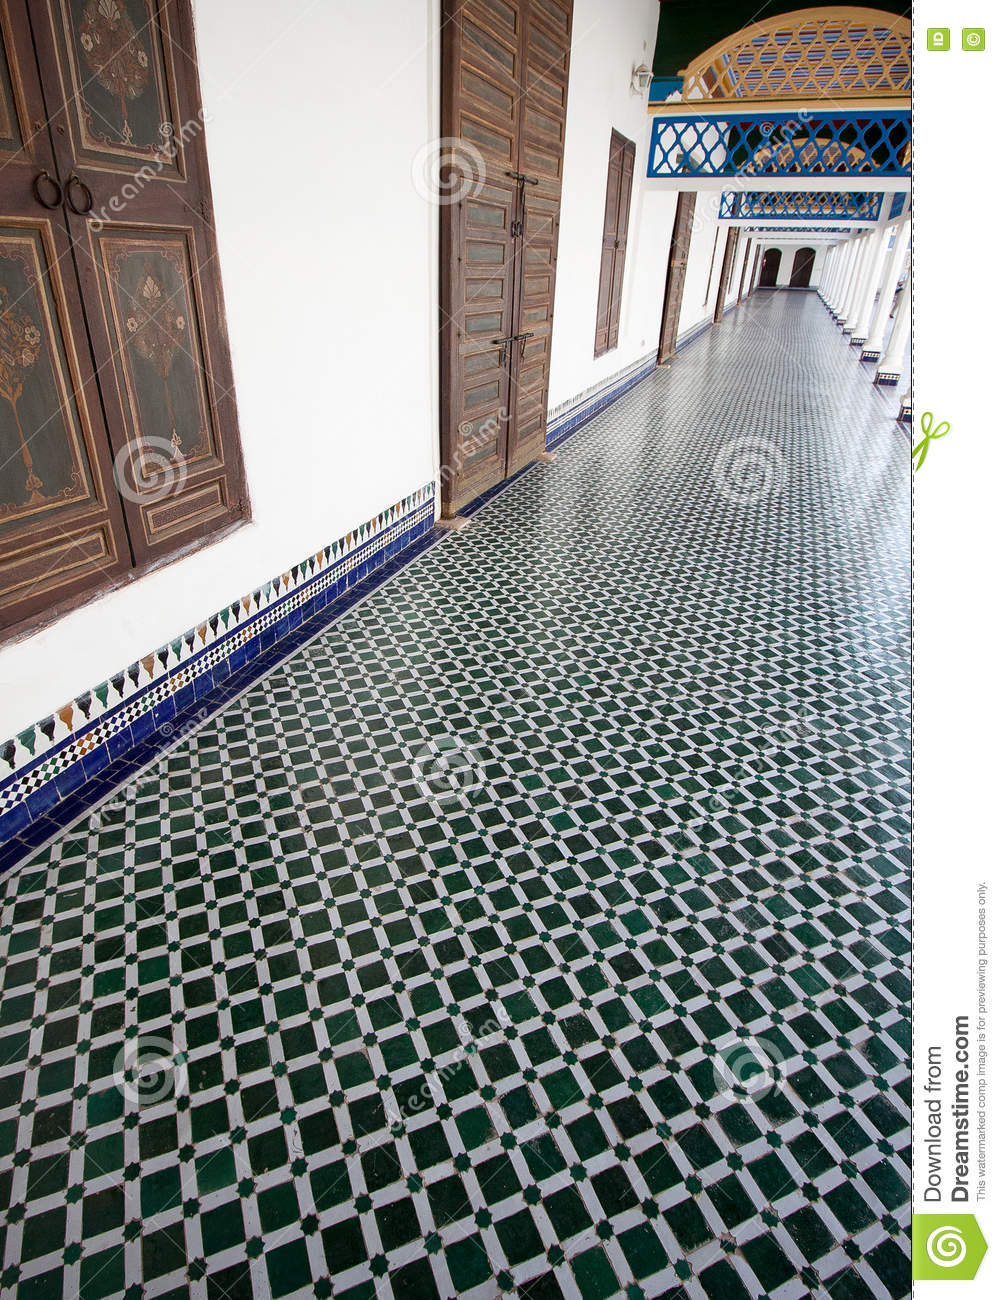 Long Hallway With Mosaic Tiled Floor In A Moroccan Palace Stock